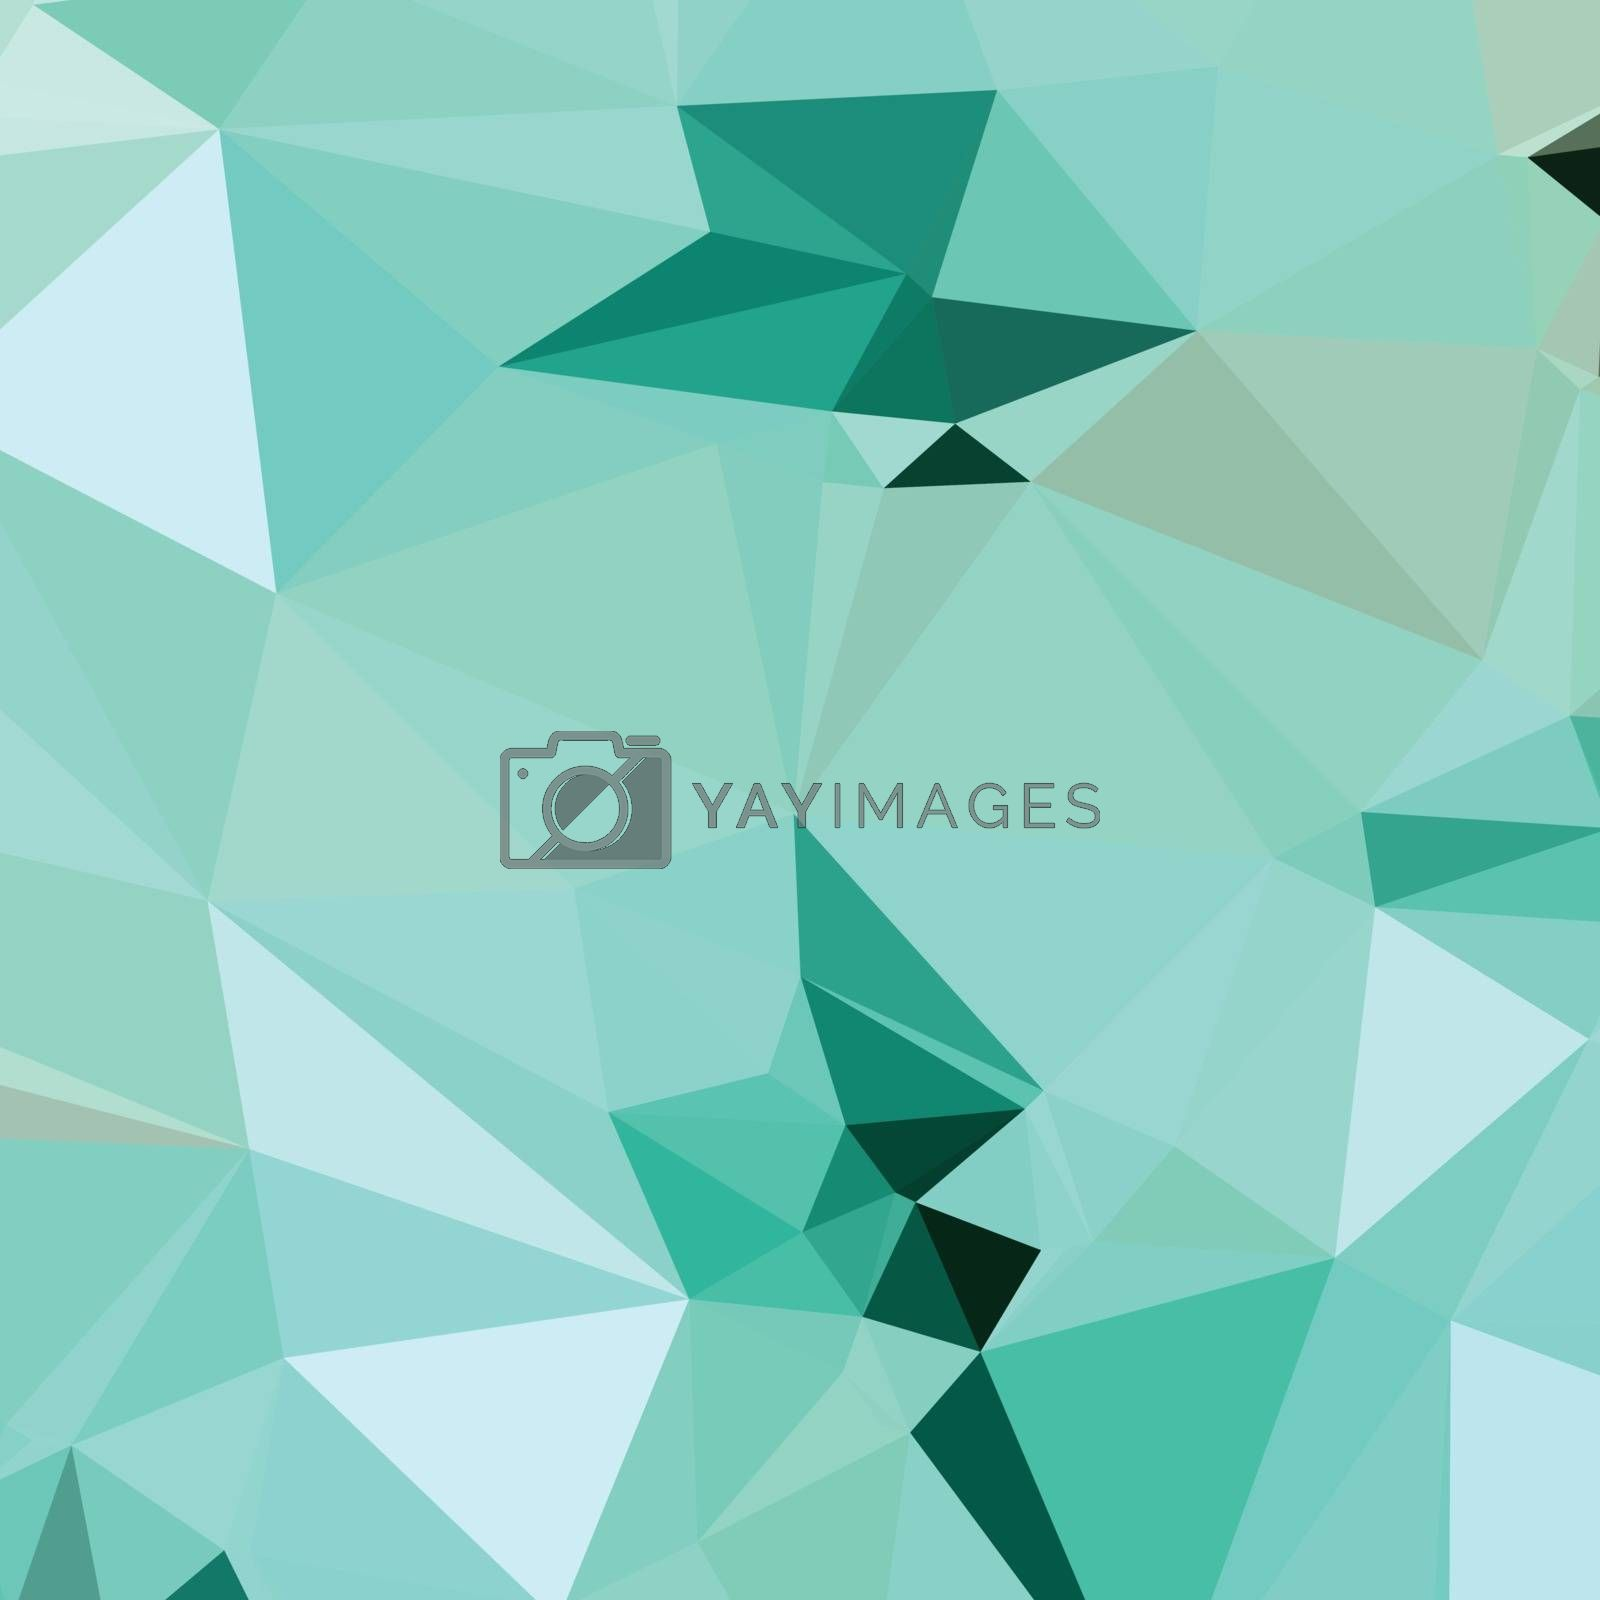 Low polygon style illustration of caribbean green abstract geometric background.